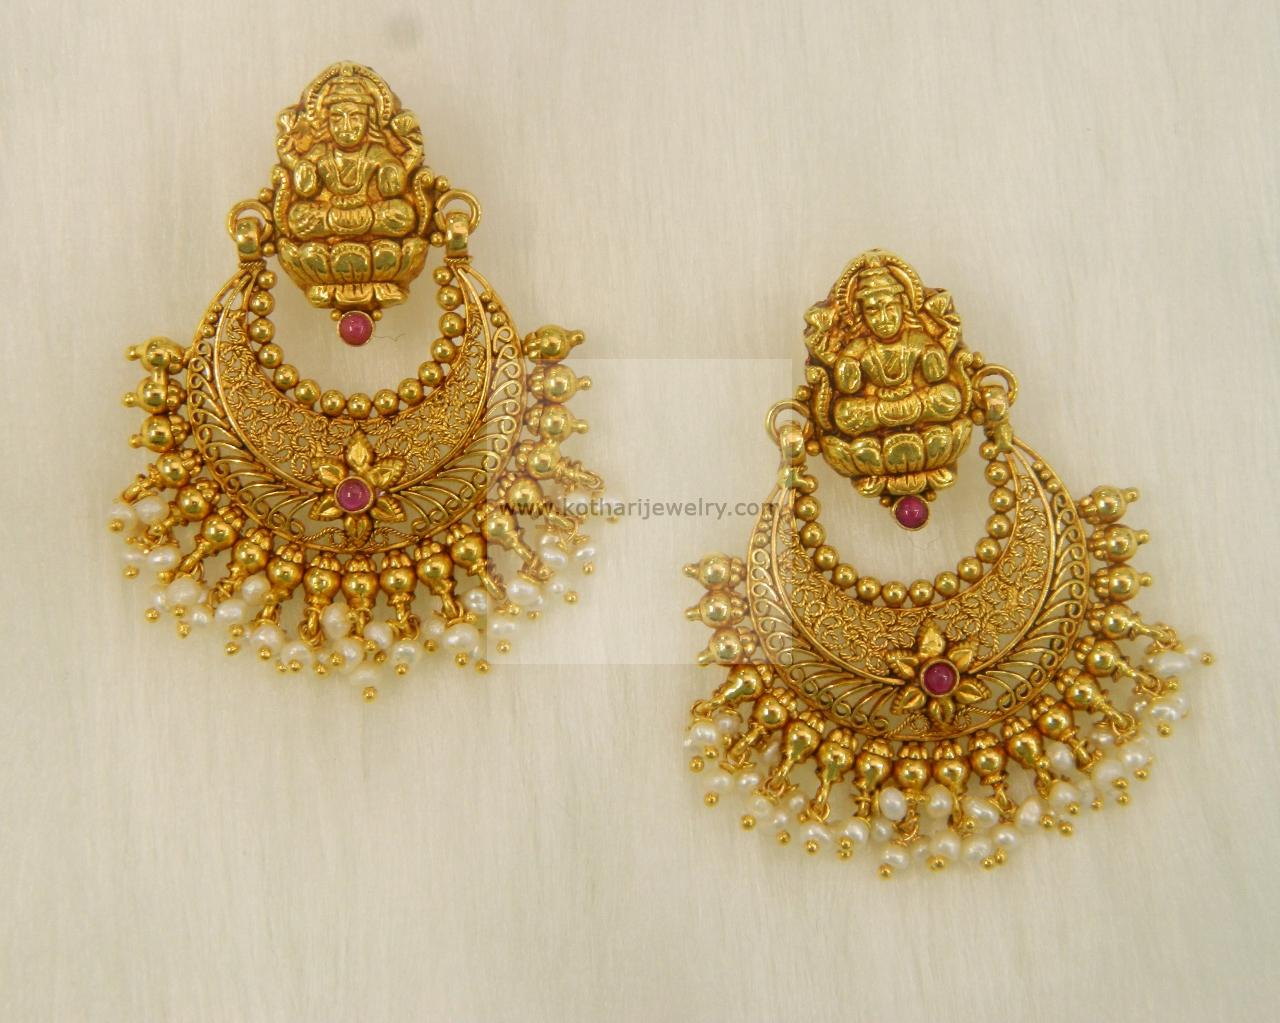 pur design designs simple gold earrings suit stylish watch collection for modern jewellery